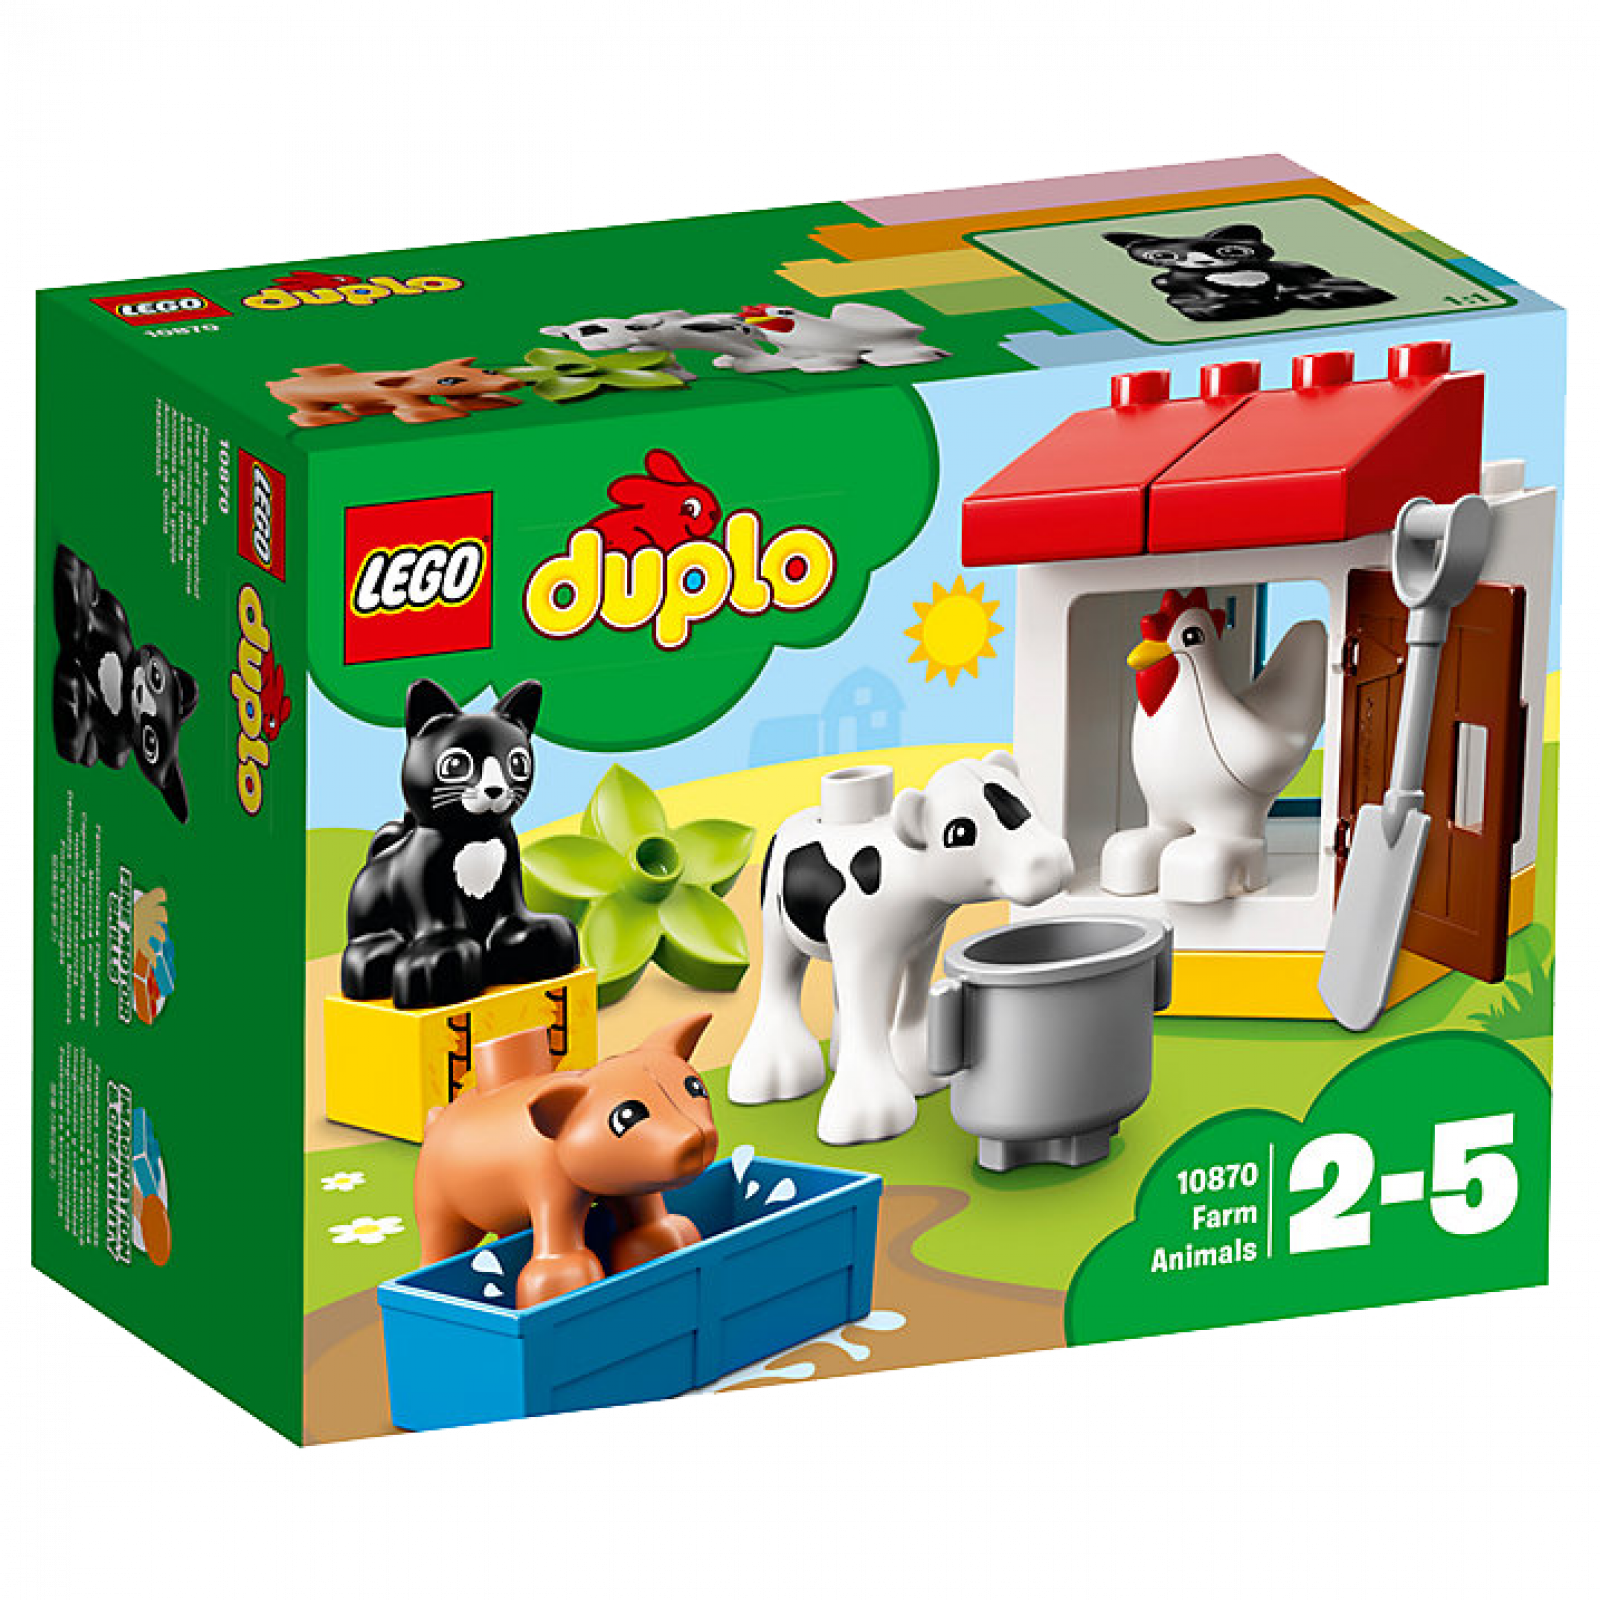 LEGO DUPLO Farm Animals 10870 thumbnails